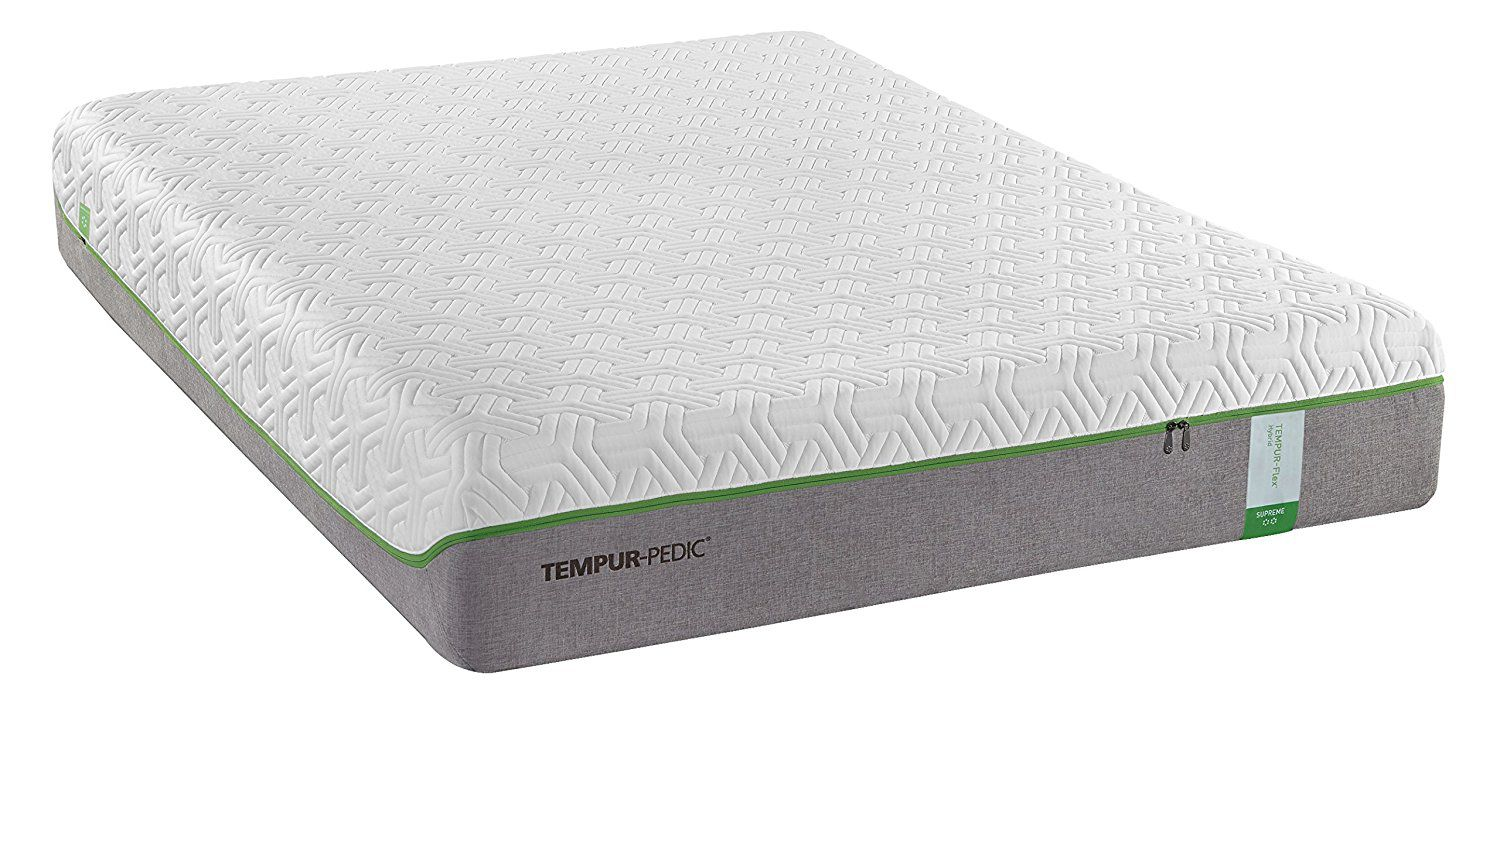 pedic tempurpedic contour set distinct firm queen prices dist tempur mattress medium long